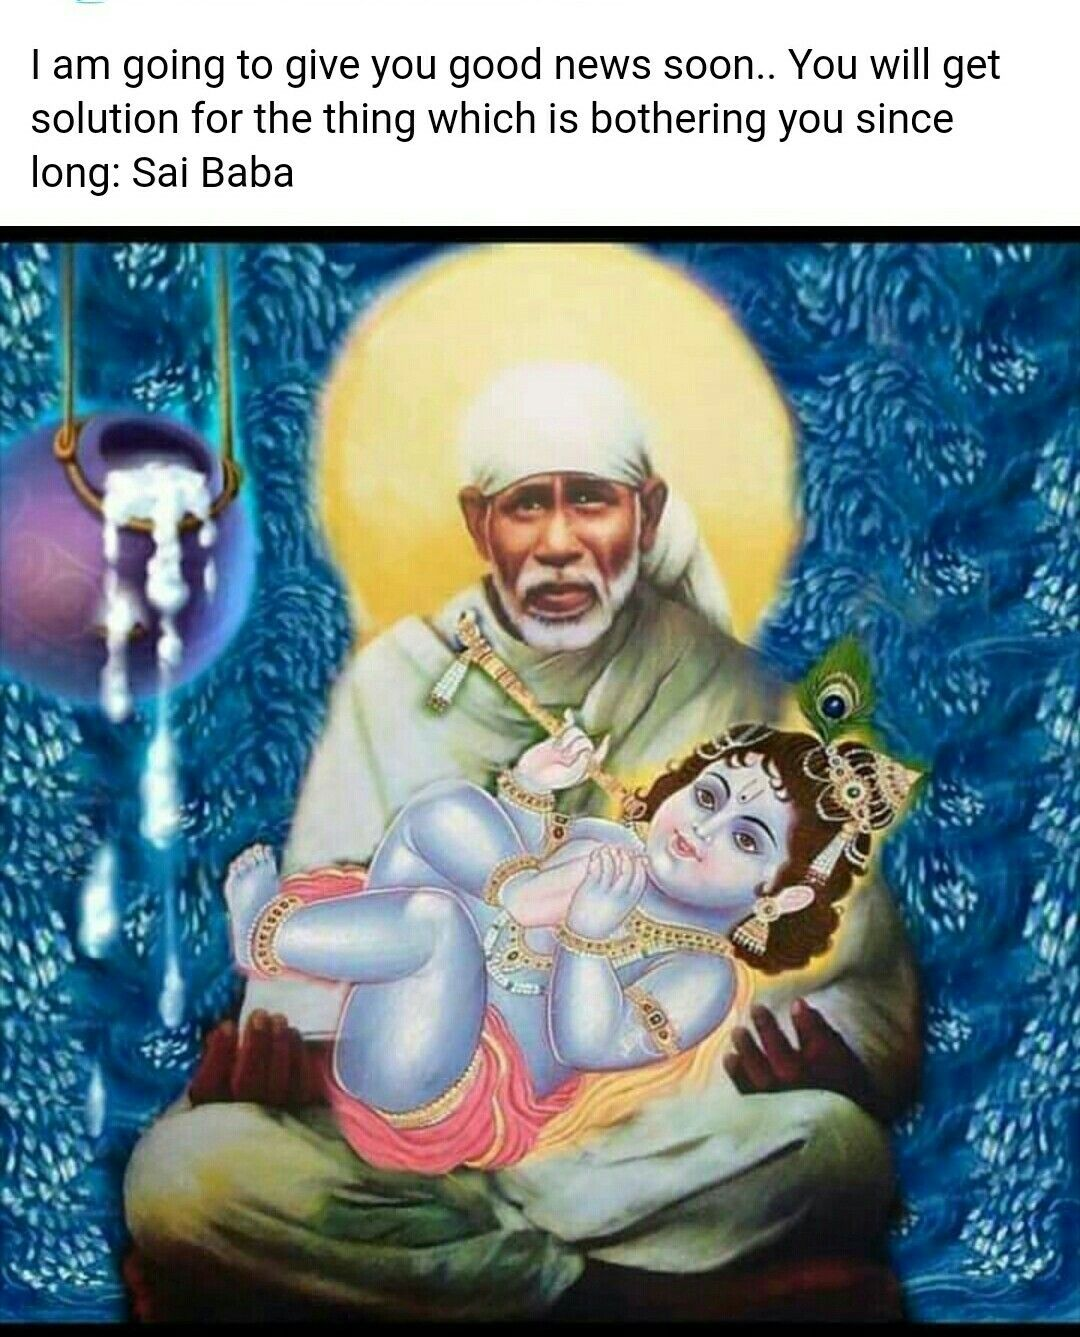 280+ Shirdi Sai Baba HD Images (2019), Ram साईं बाबा